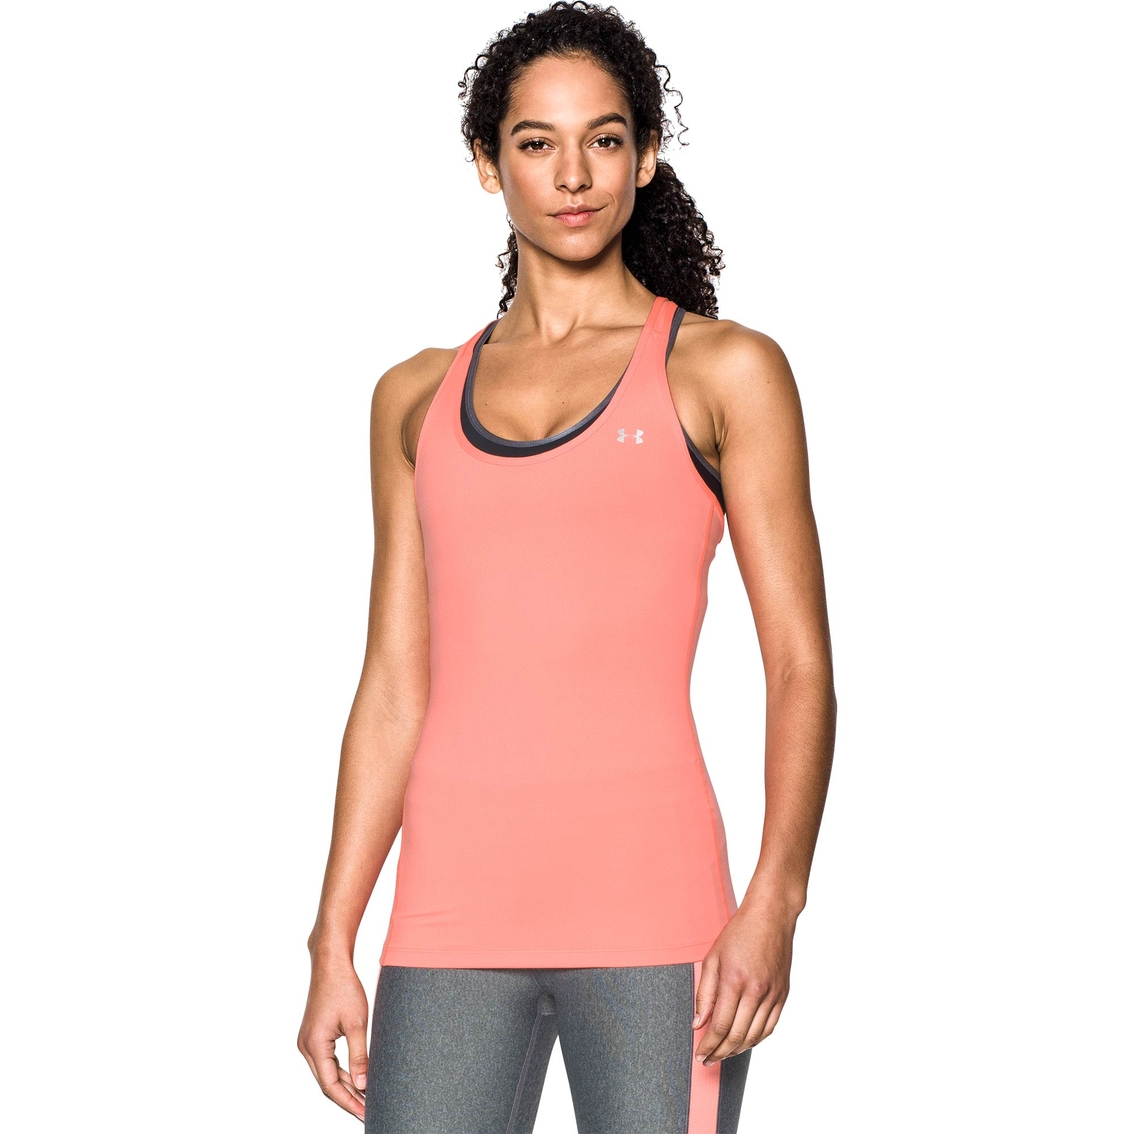 b7d4a8efa360a Under Armour Women's Ua Heatgear Armour Racer Tank | Tops | Apparel ...